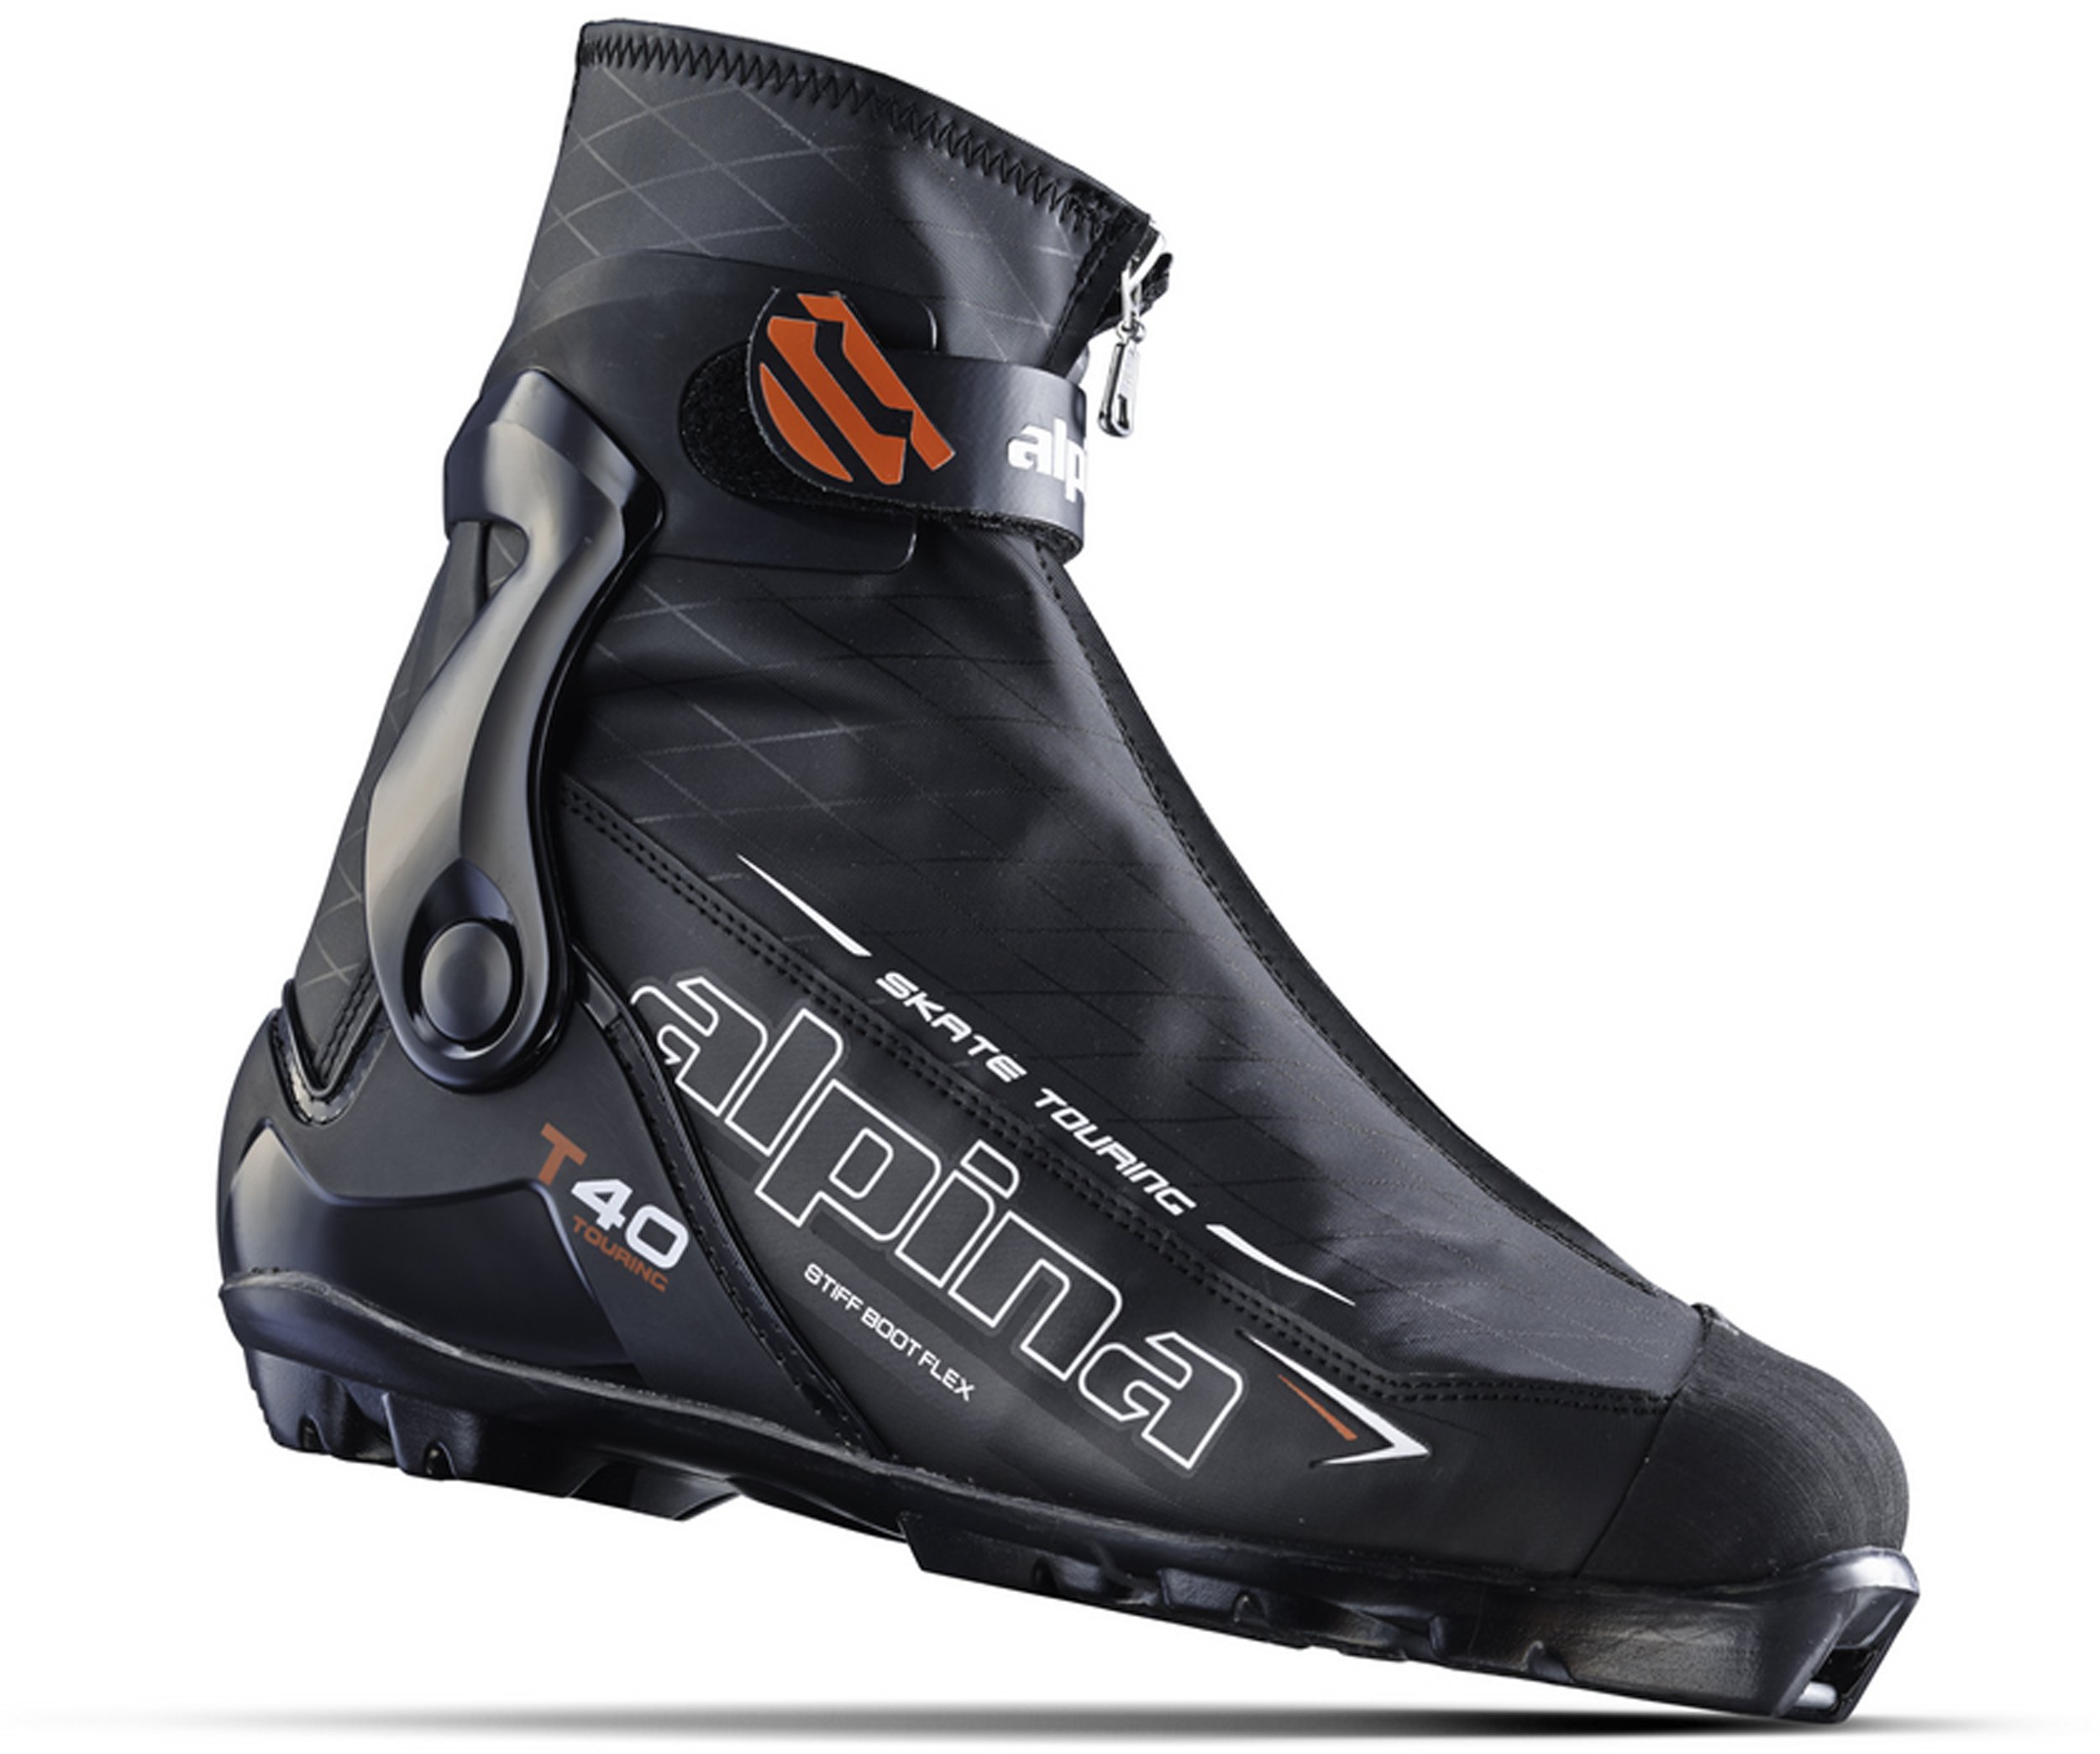 Alpina Sports T40 Skate Touring Cross Country Nordic Ski Boots, Euro 45, Black/White/Red by Alpina